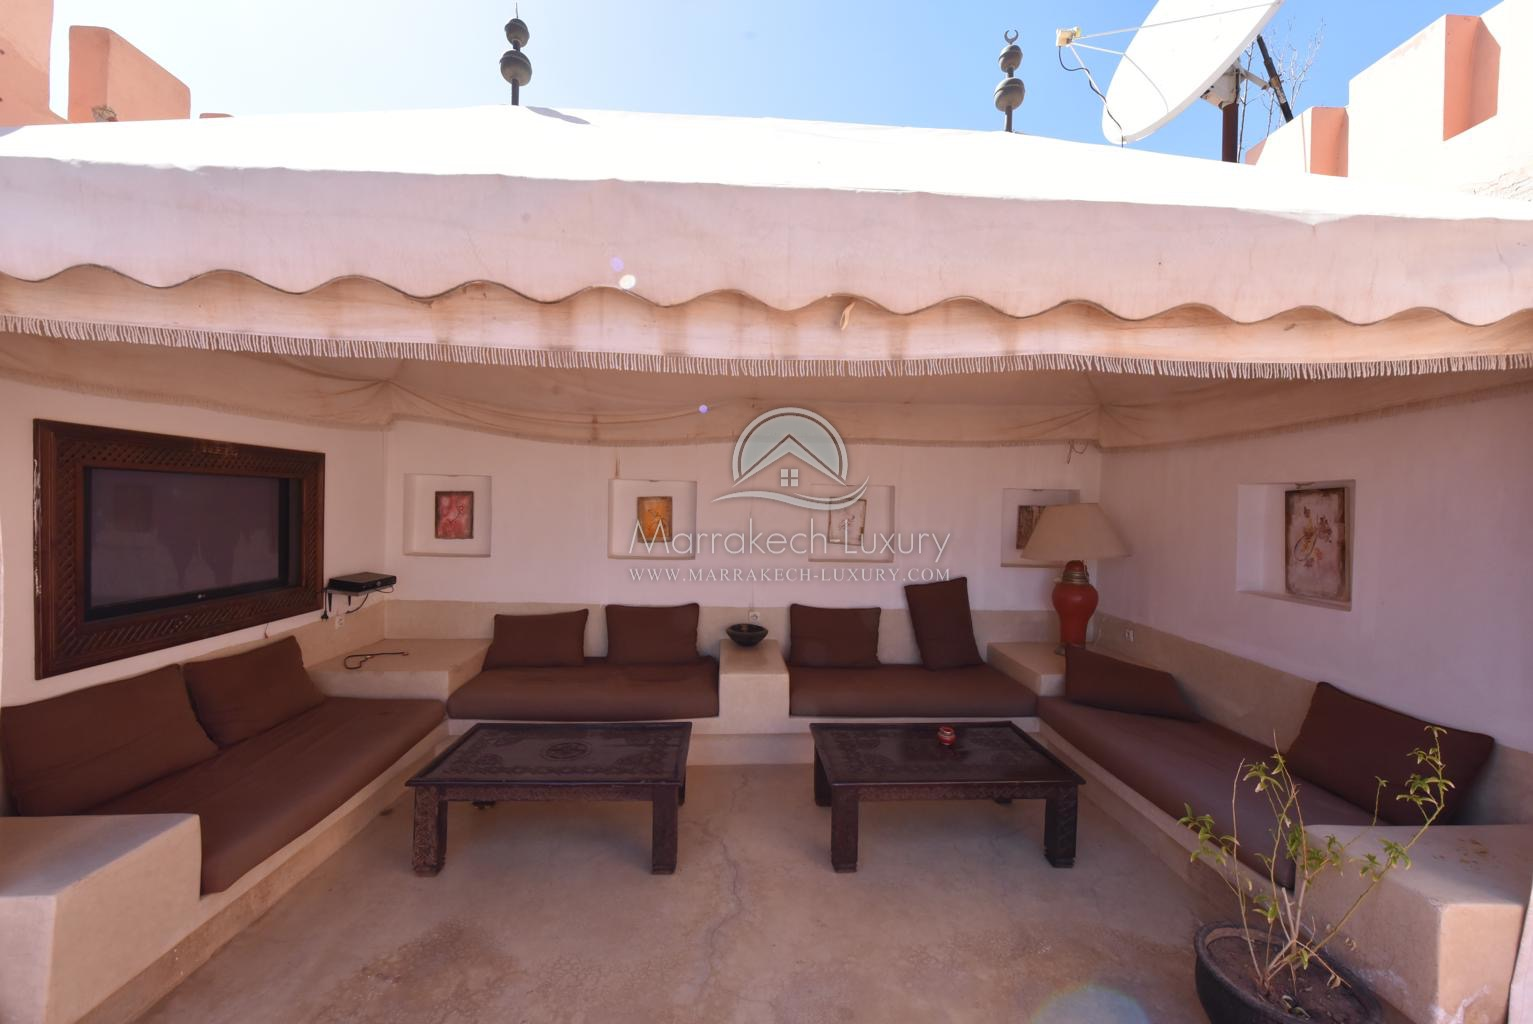 Riaavmed1037ma 45 agence immobili re marrakech acheter for Agence immobiliere 45